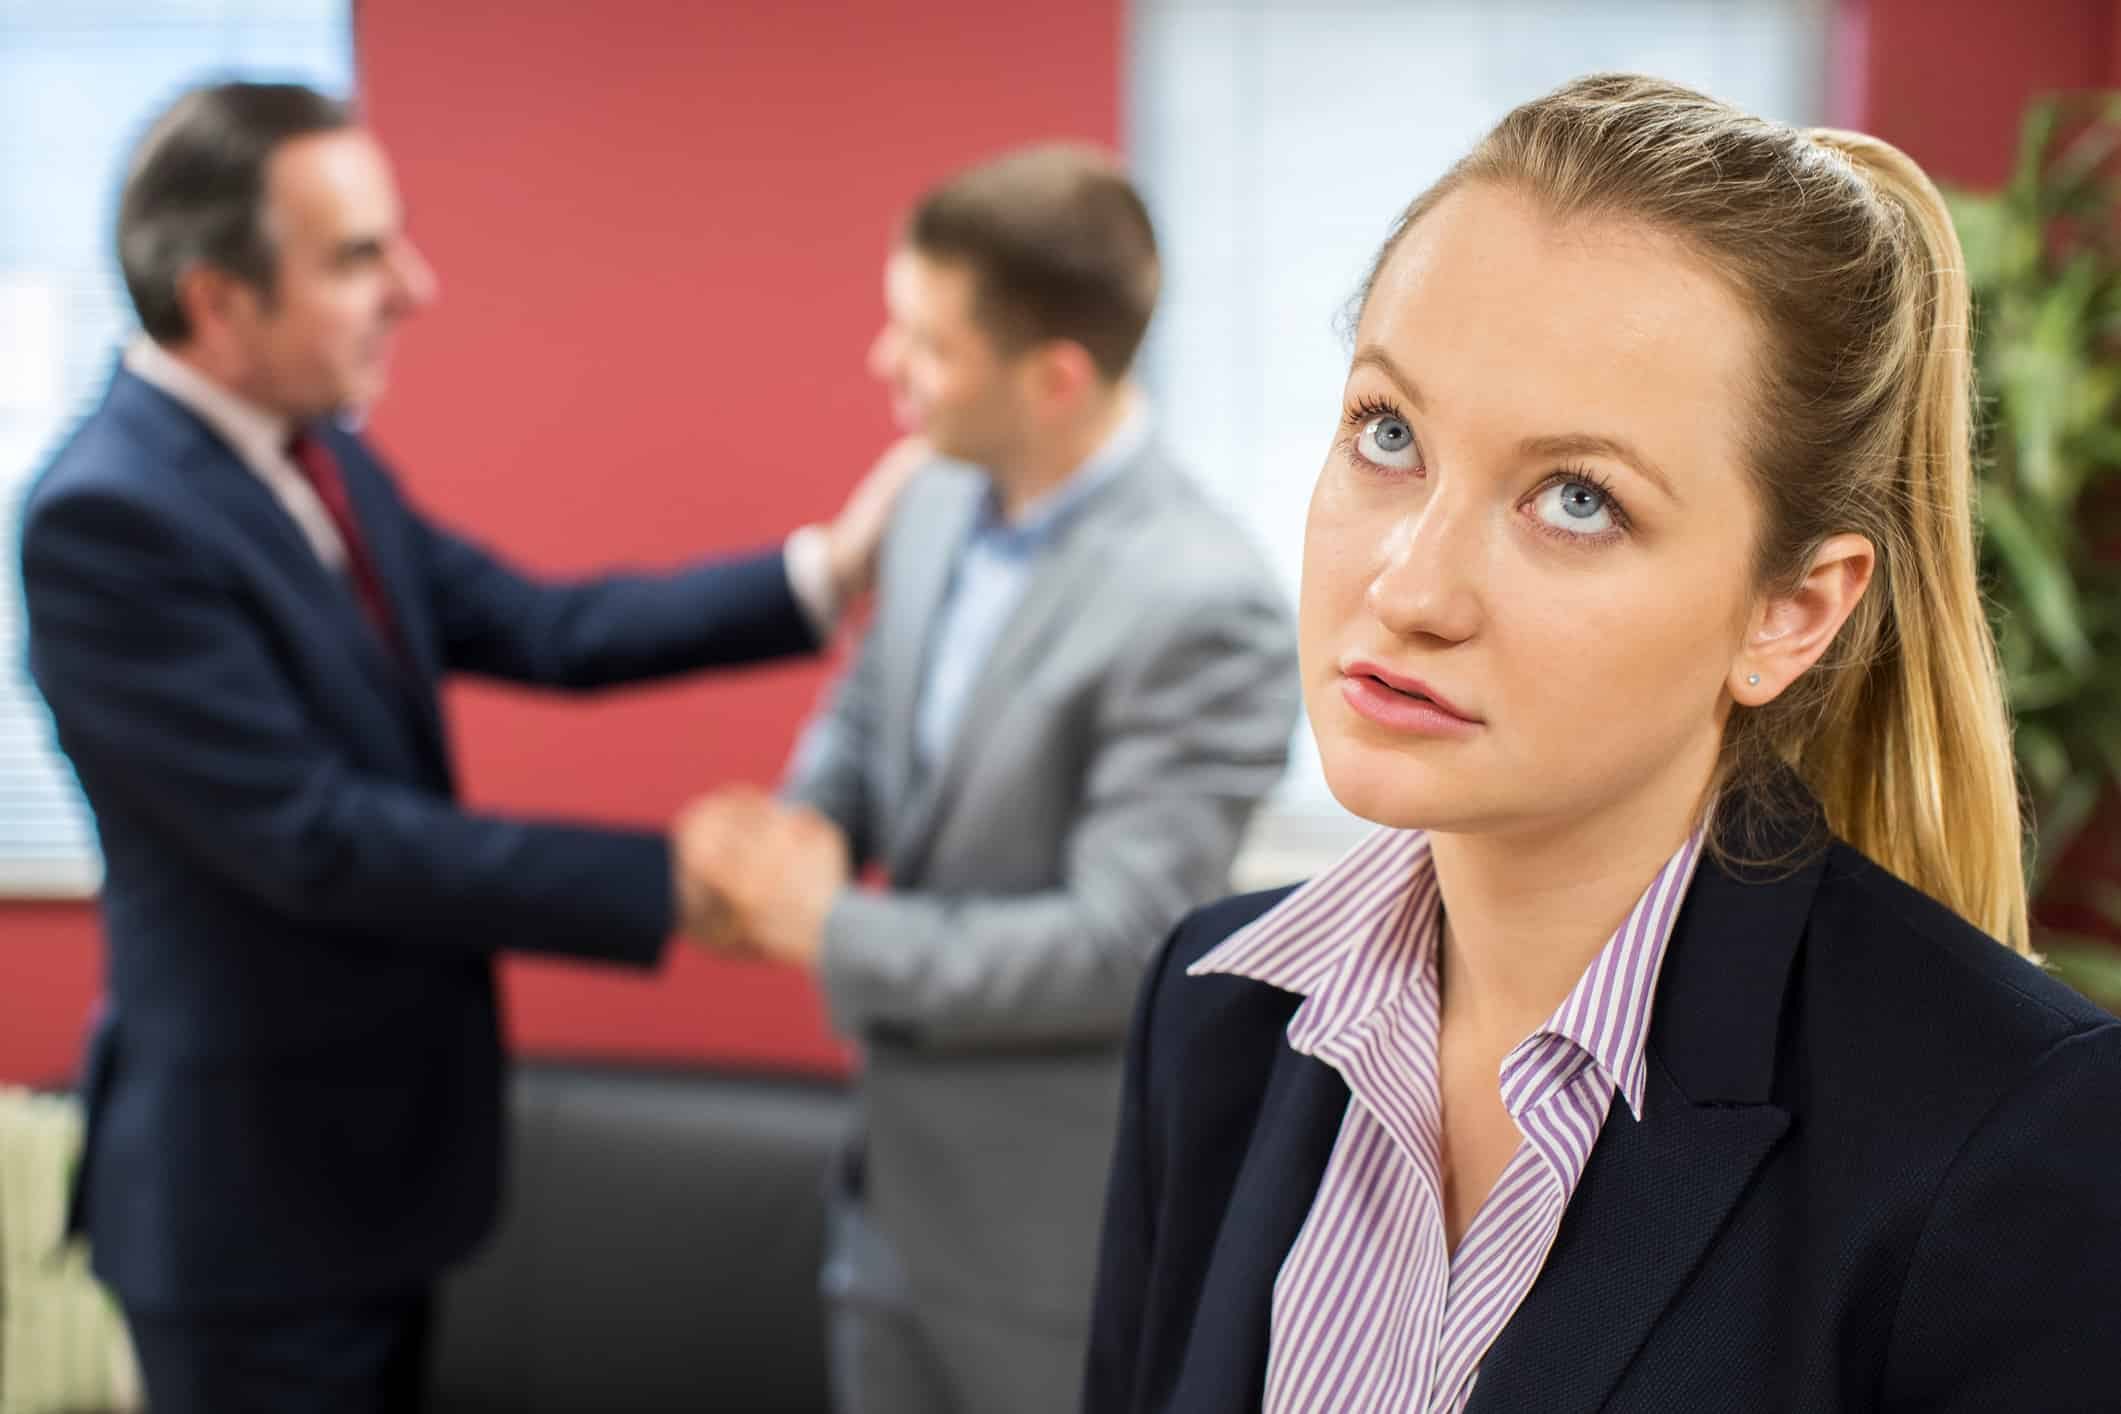 Unhappy businesswoman with male colleague being congratulated